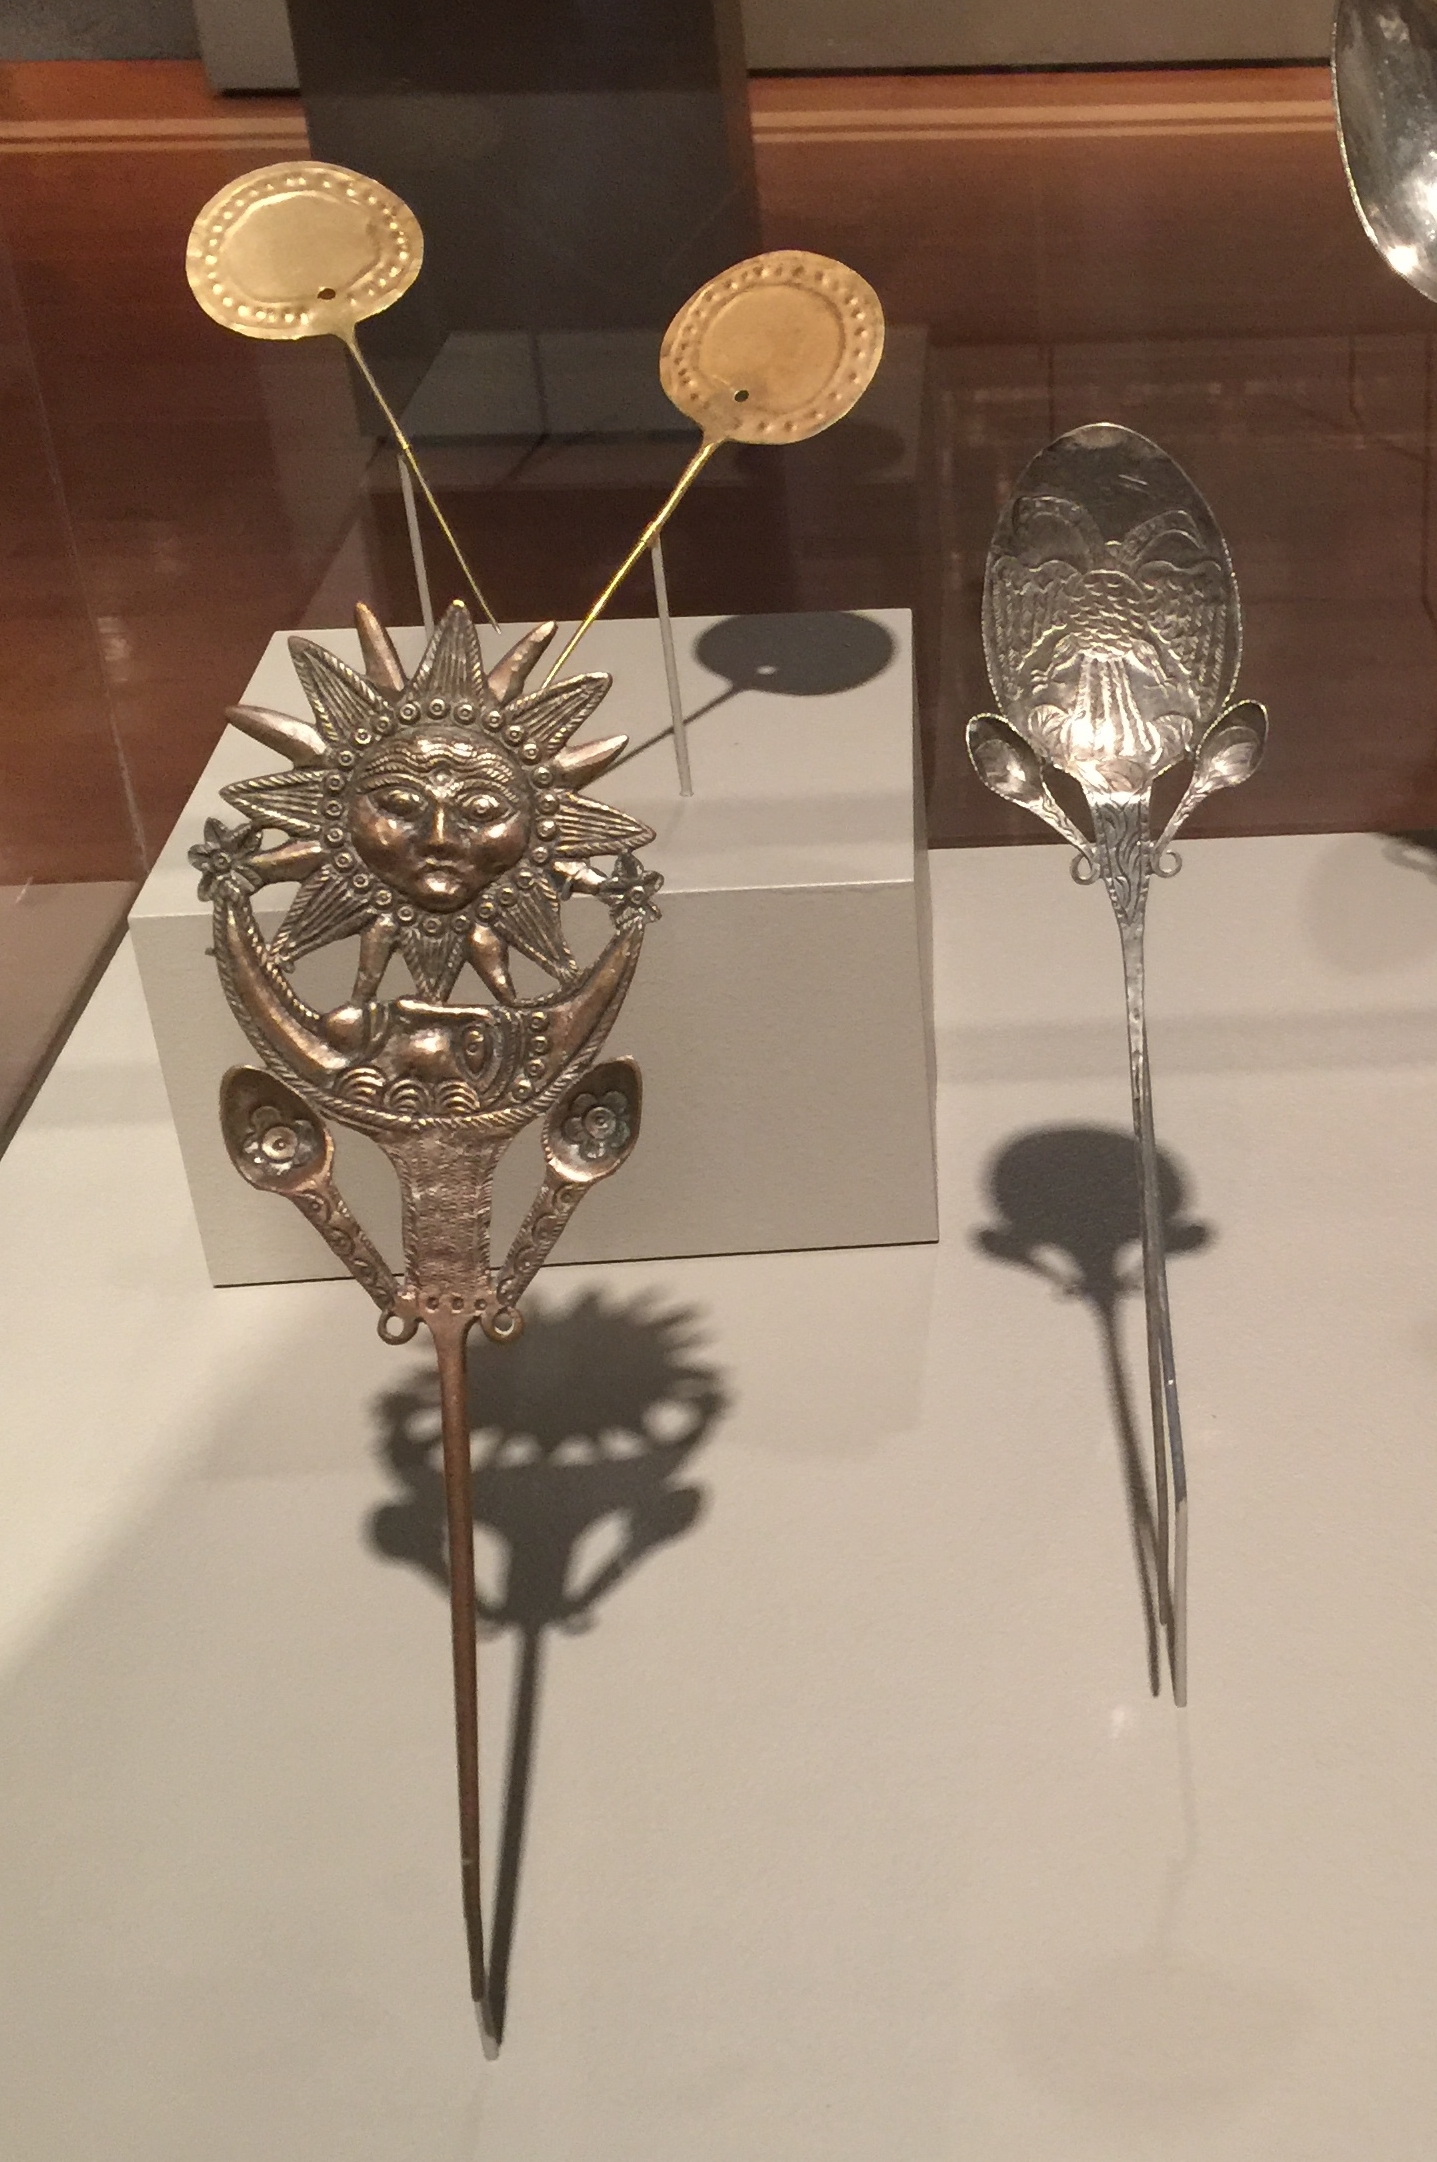 Upper left, pair of  tupu  pins, Inca, Peru, Chile or Bolivia, 1400–1500, gold. Anonymous gift, 1995.318.1 & 2. Lower left,  ttipqui  pin, Peru, 1800s, silver-plated copper. Gift of Mrs. LeRoy Schwartz, 1954.156. Right,  ttipqui  pin, Peru, 1800s, silver. Gift of Dr. Mary Lanius, 2008.844. (Photo: David Hughes)